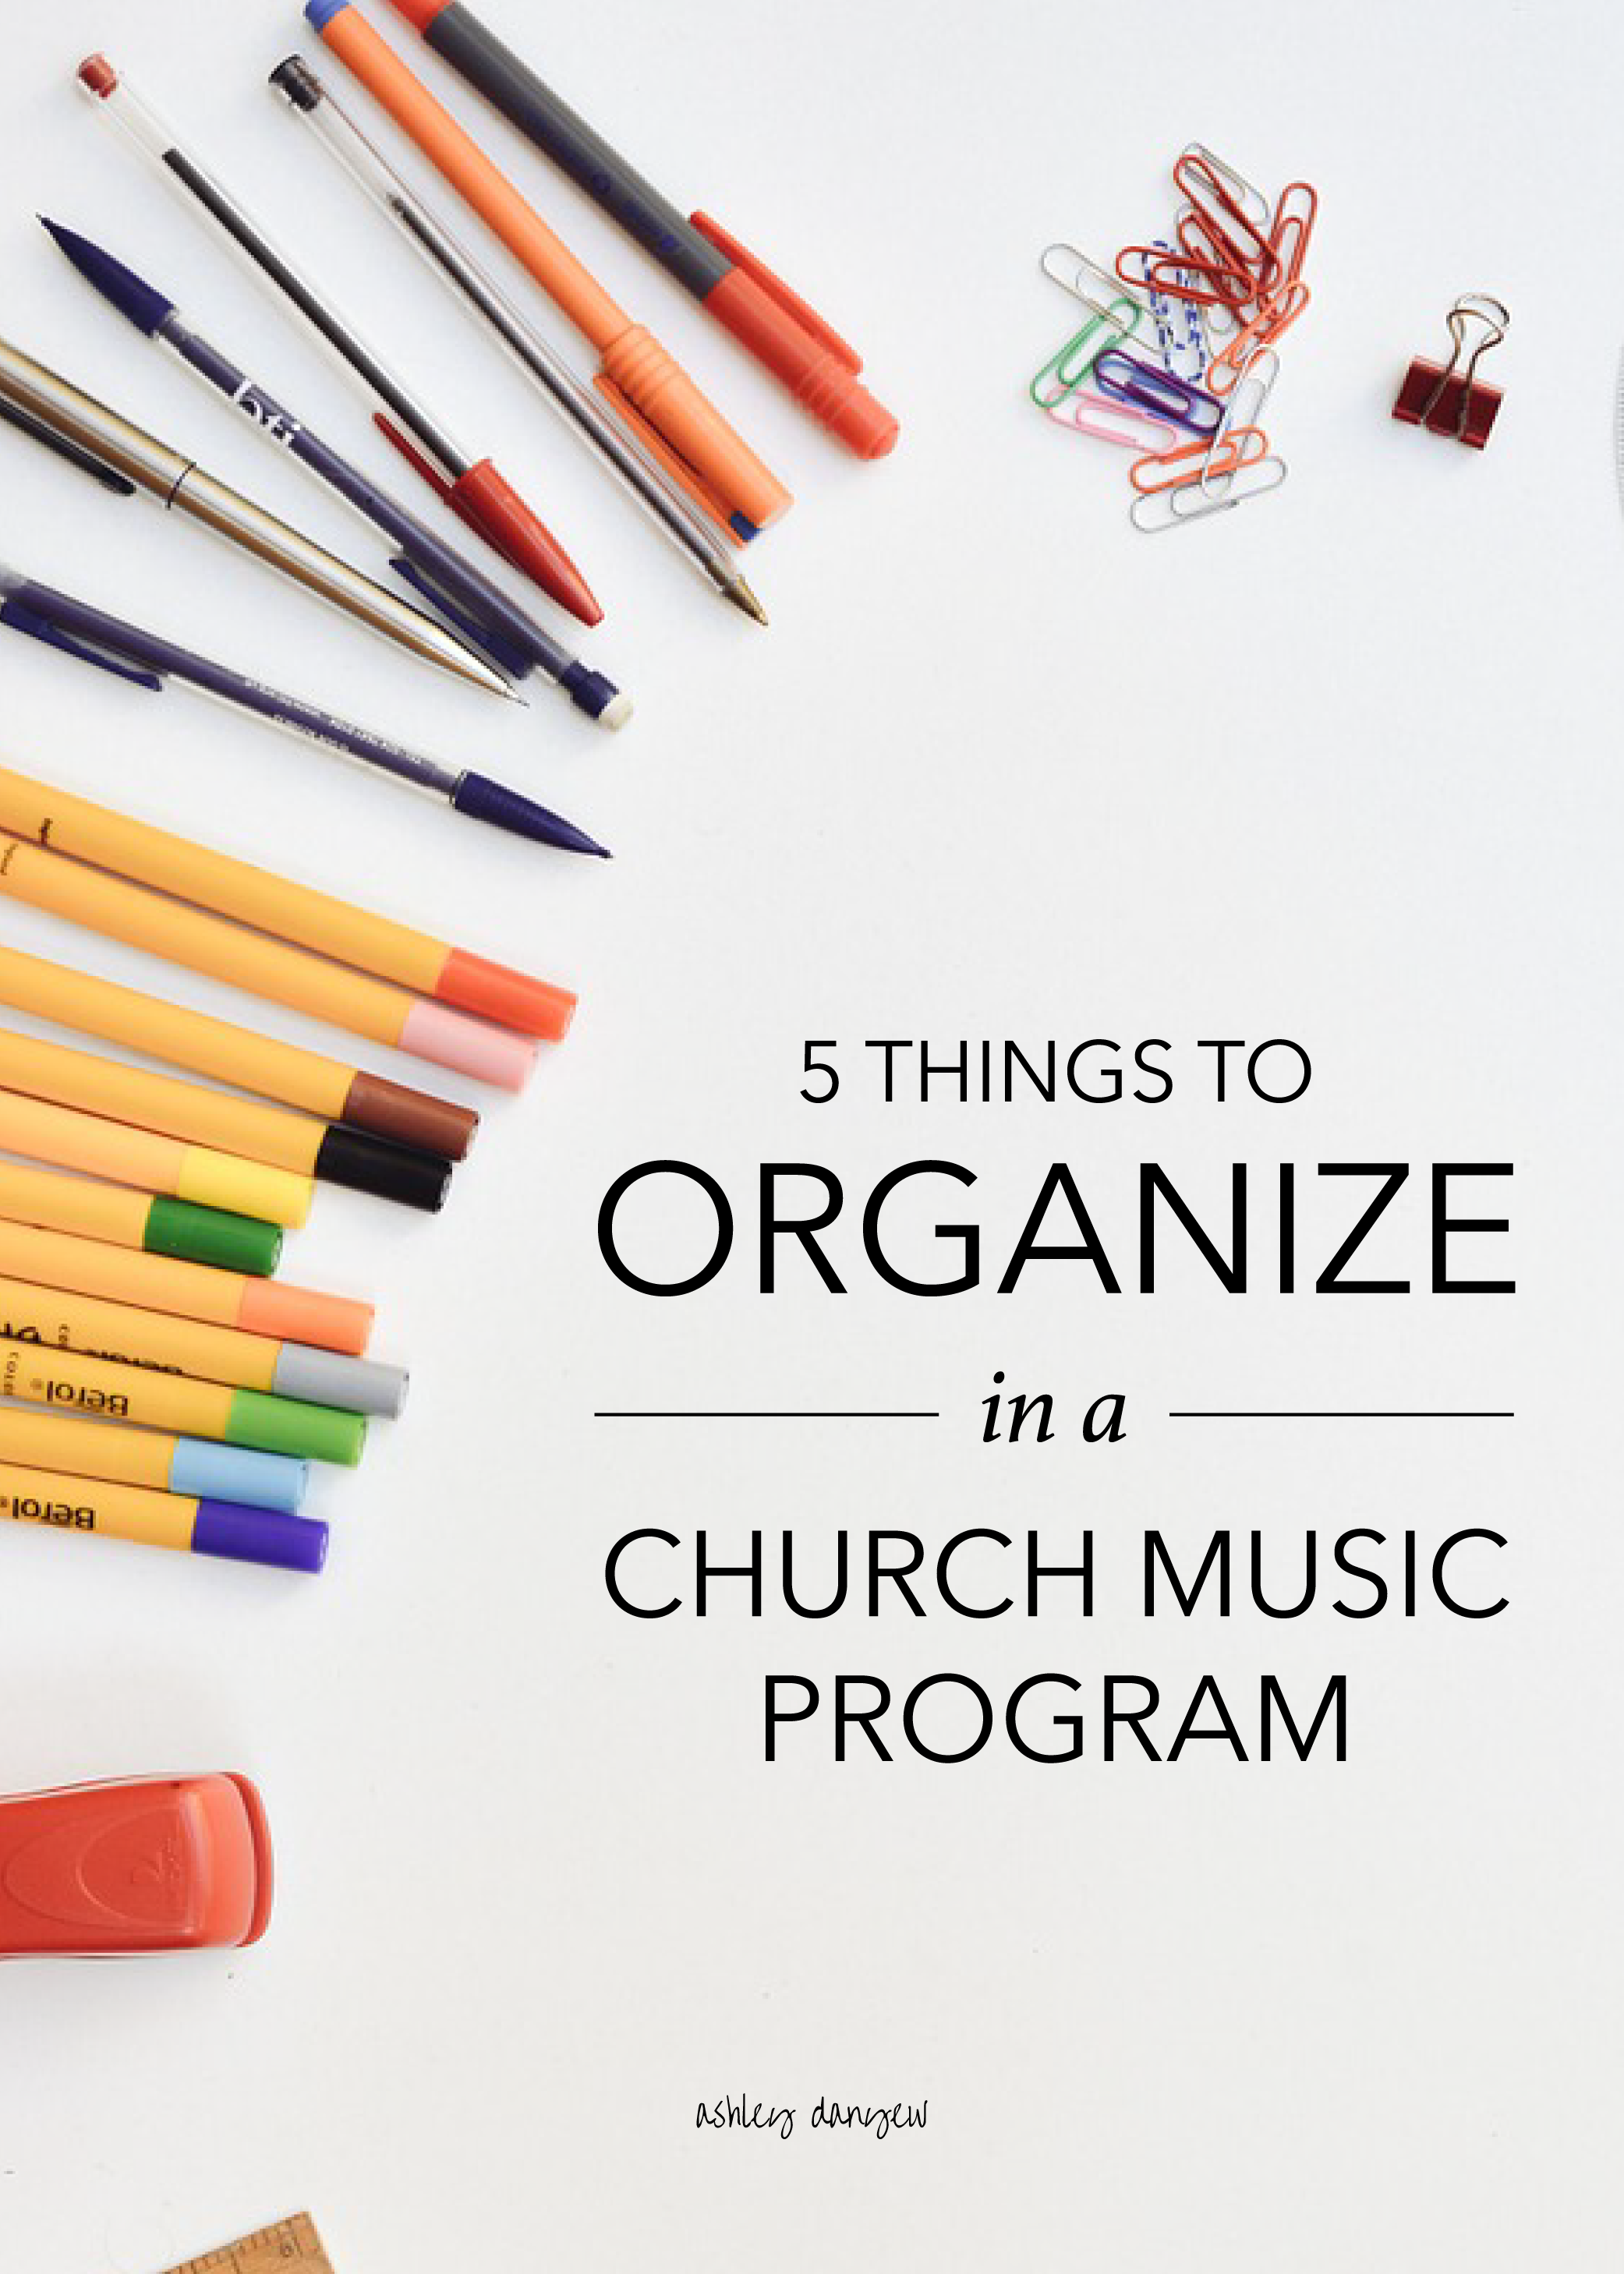 Copy of 5 Things to Organize in a Church Music Program